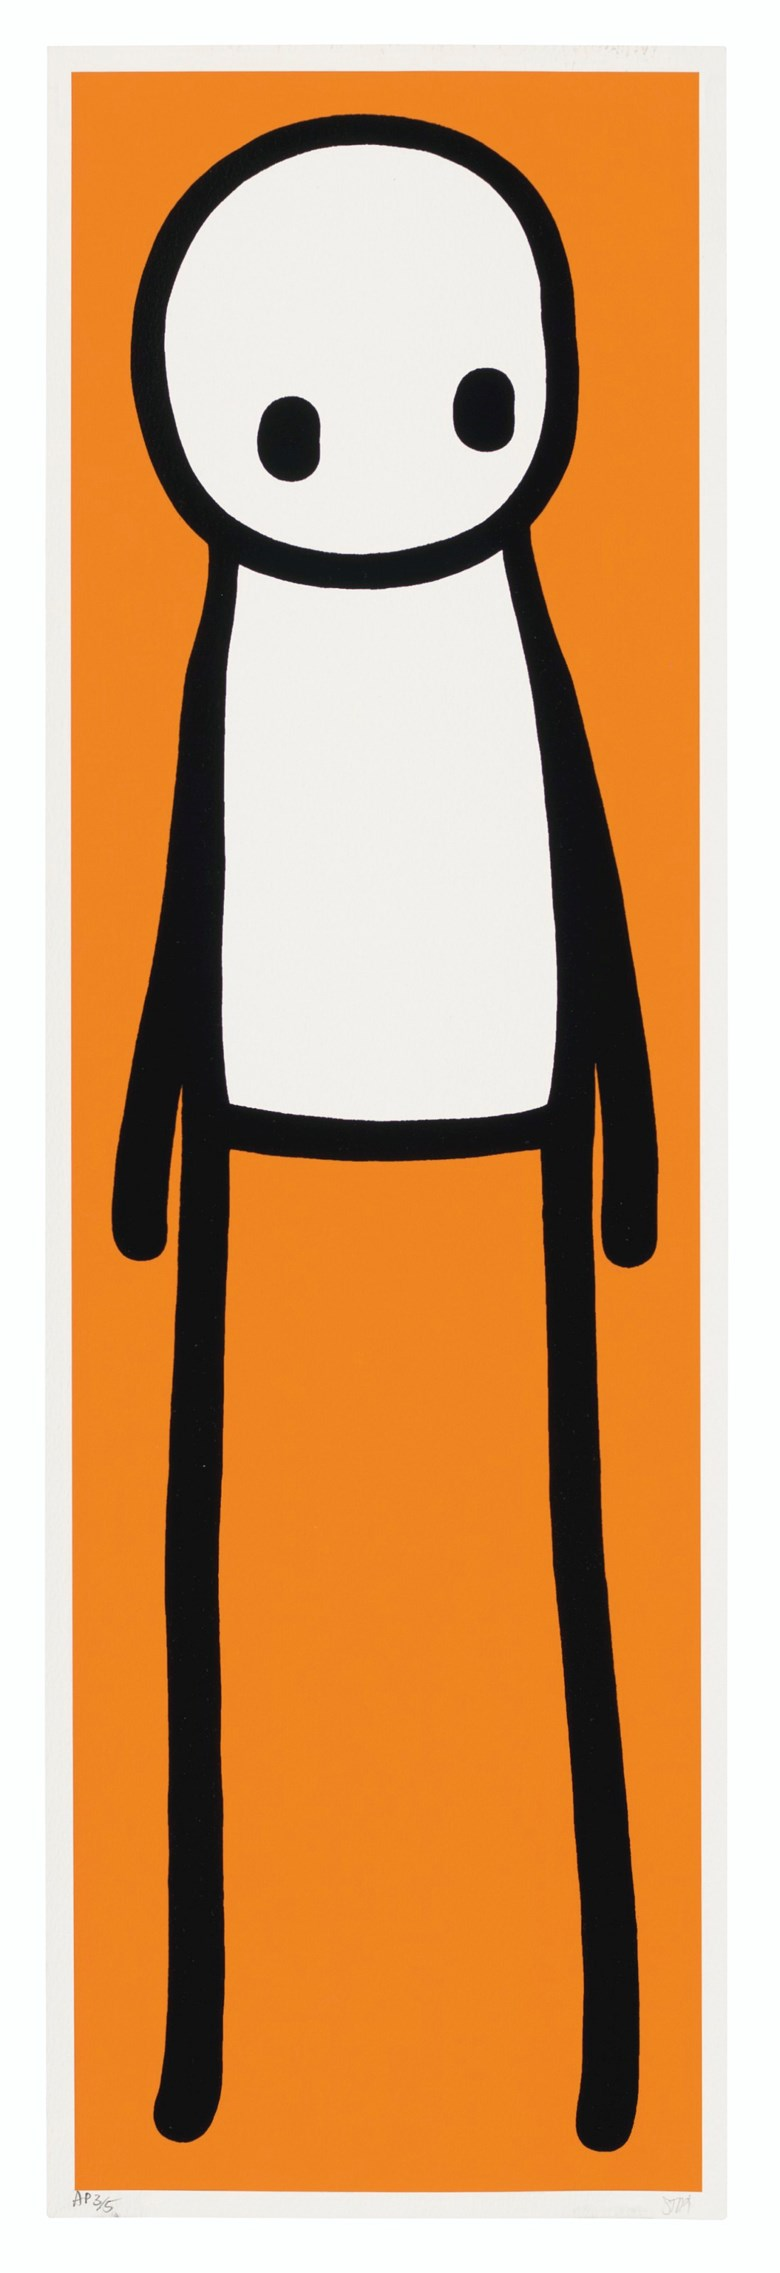 STIK (b. 1979), Book deluxe edition (Orange),2015. Screenprint in glossy black enamel with Giclée in orange.Image 740 x 220  mm, Sheet 758 x 240  mm. Estimate £20,000-30,000. Offered in Prints & Multiples on 18 March 2020 at Christie's in London